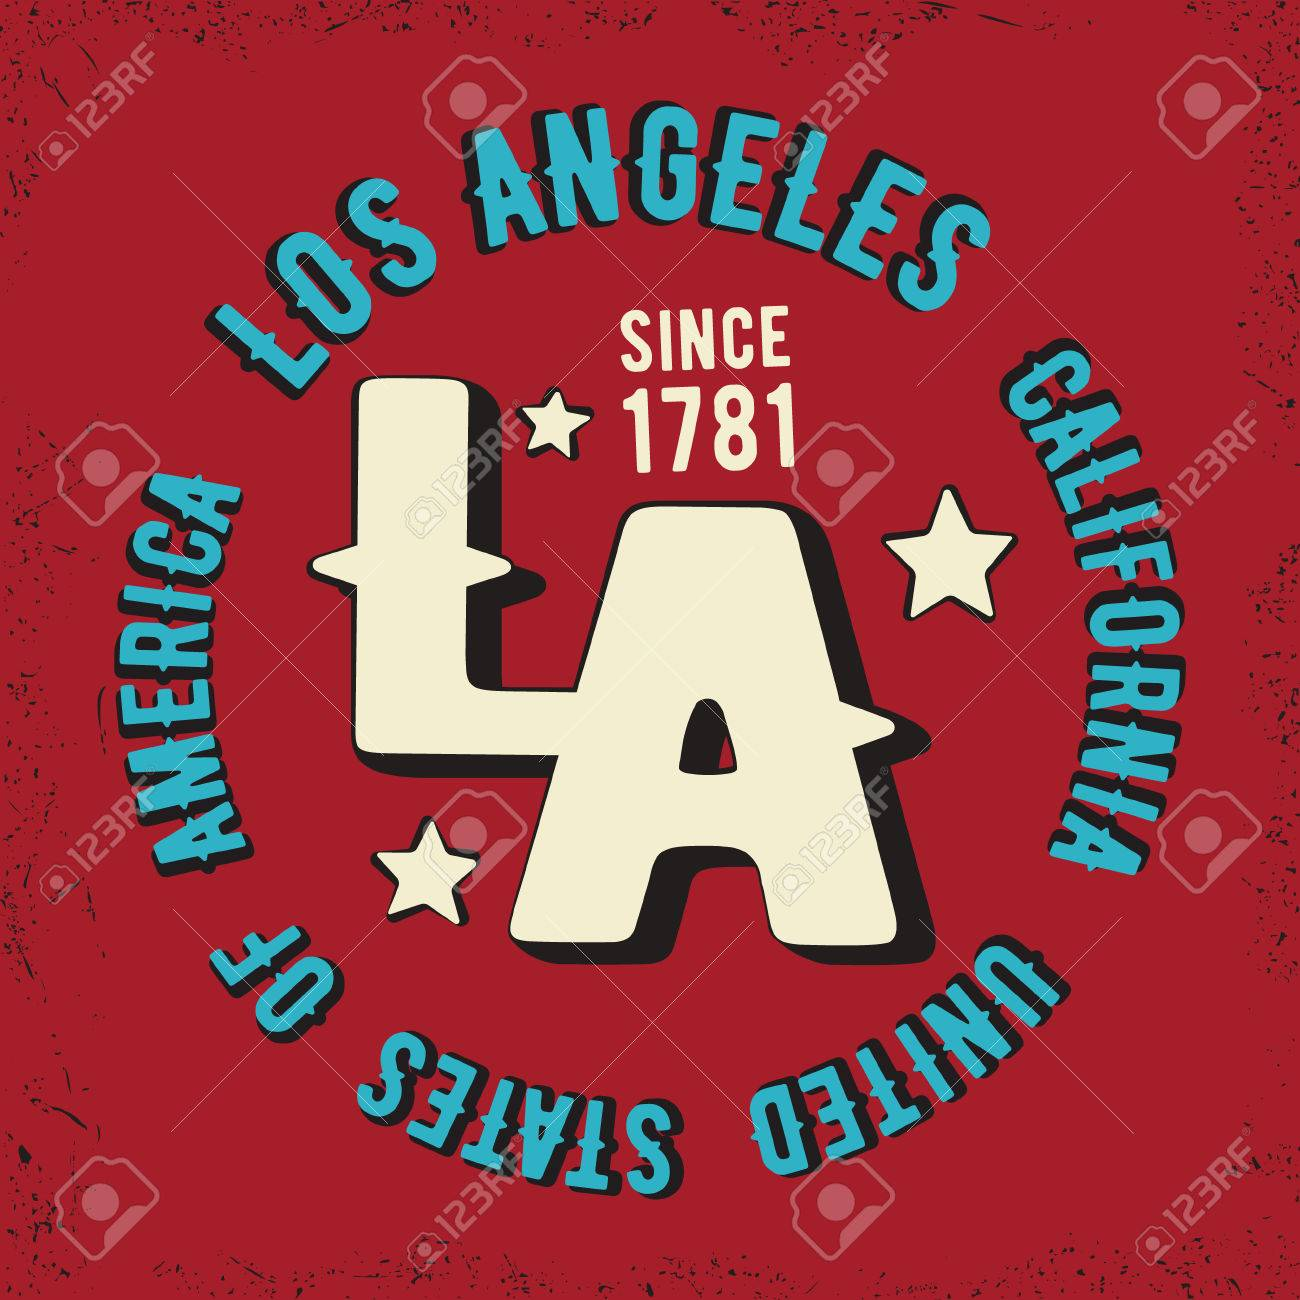 Design t shirts los angeles - T Shirt Print Design Los Angeles Vintage Stamp Printing And Badge Applique